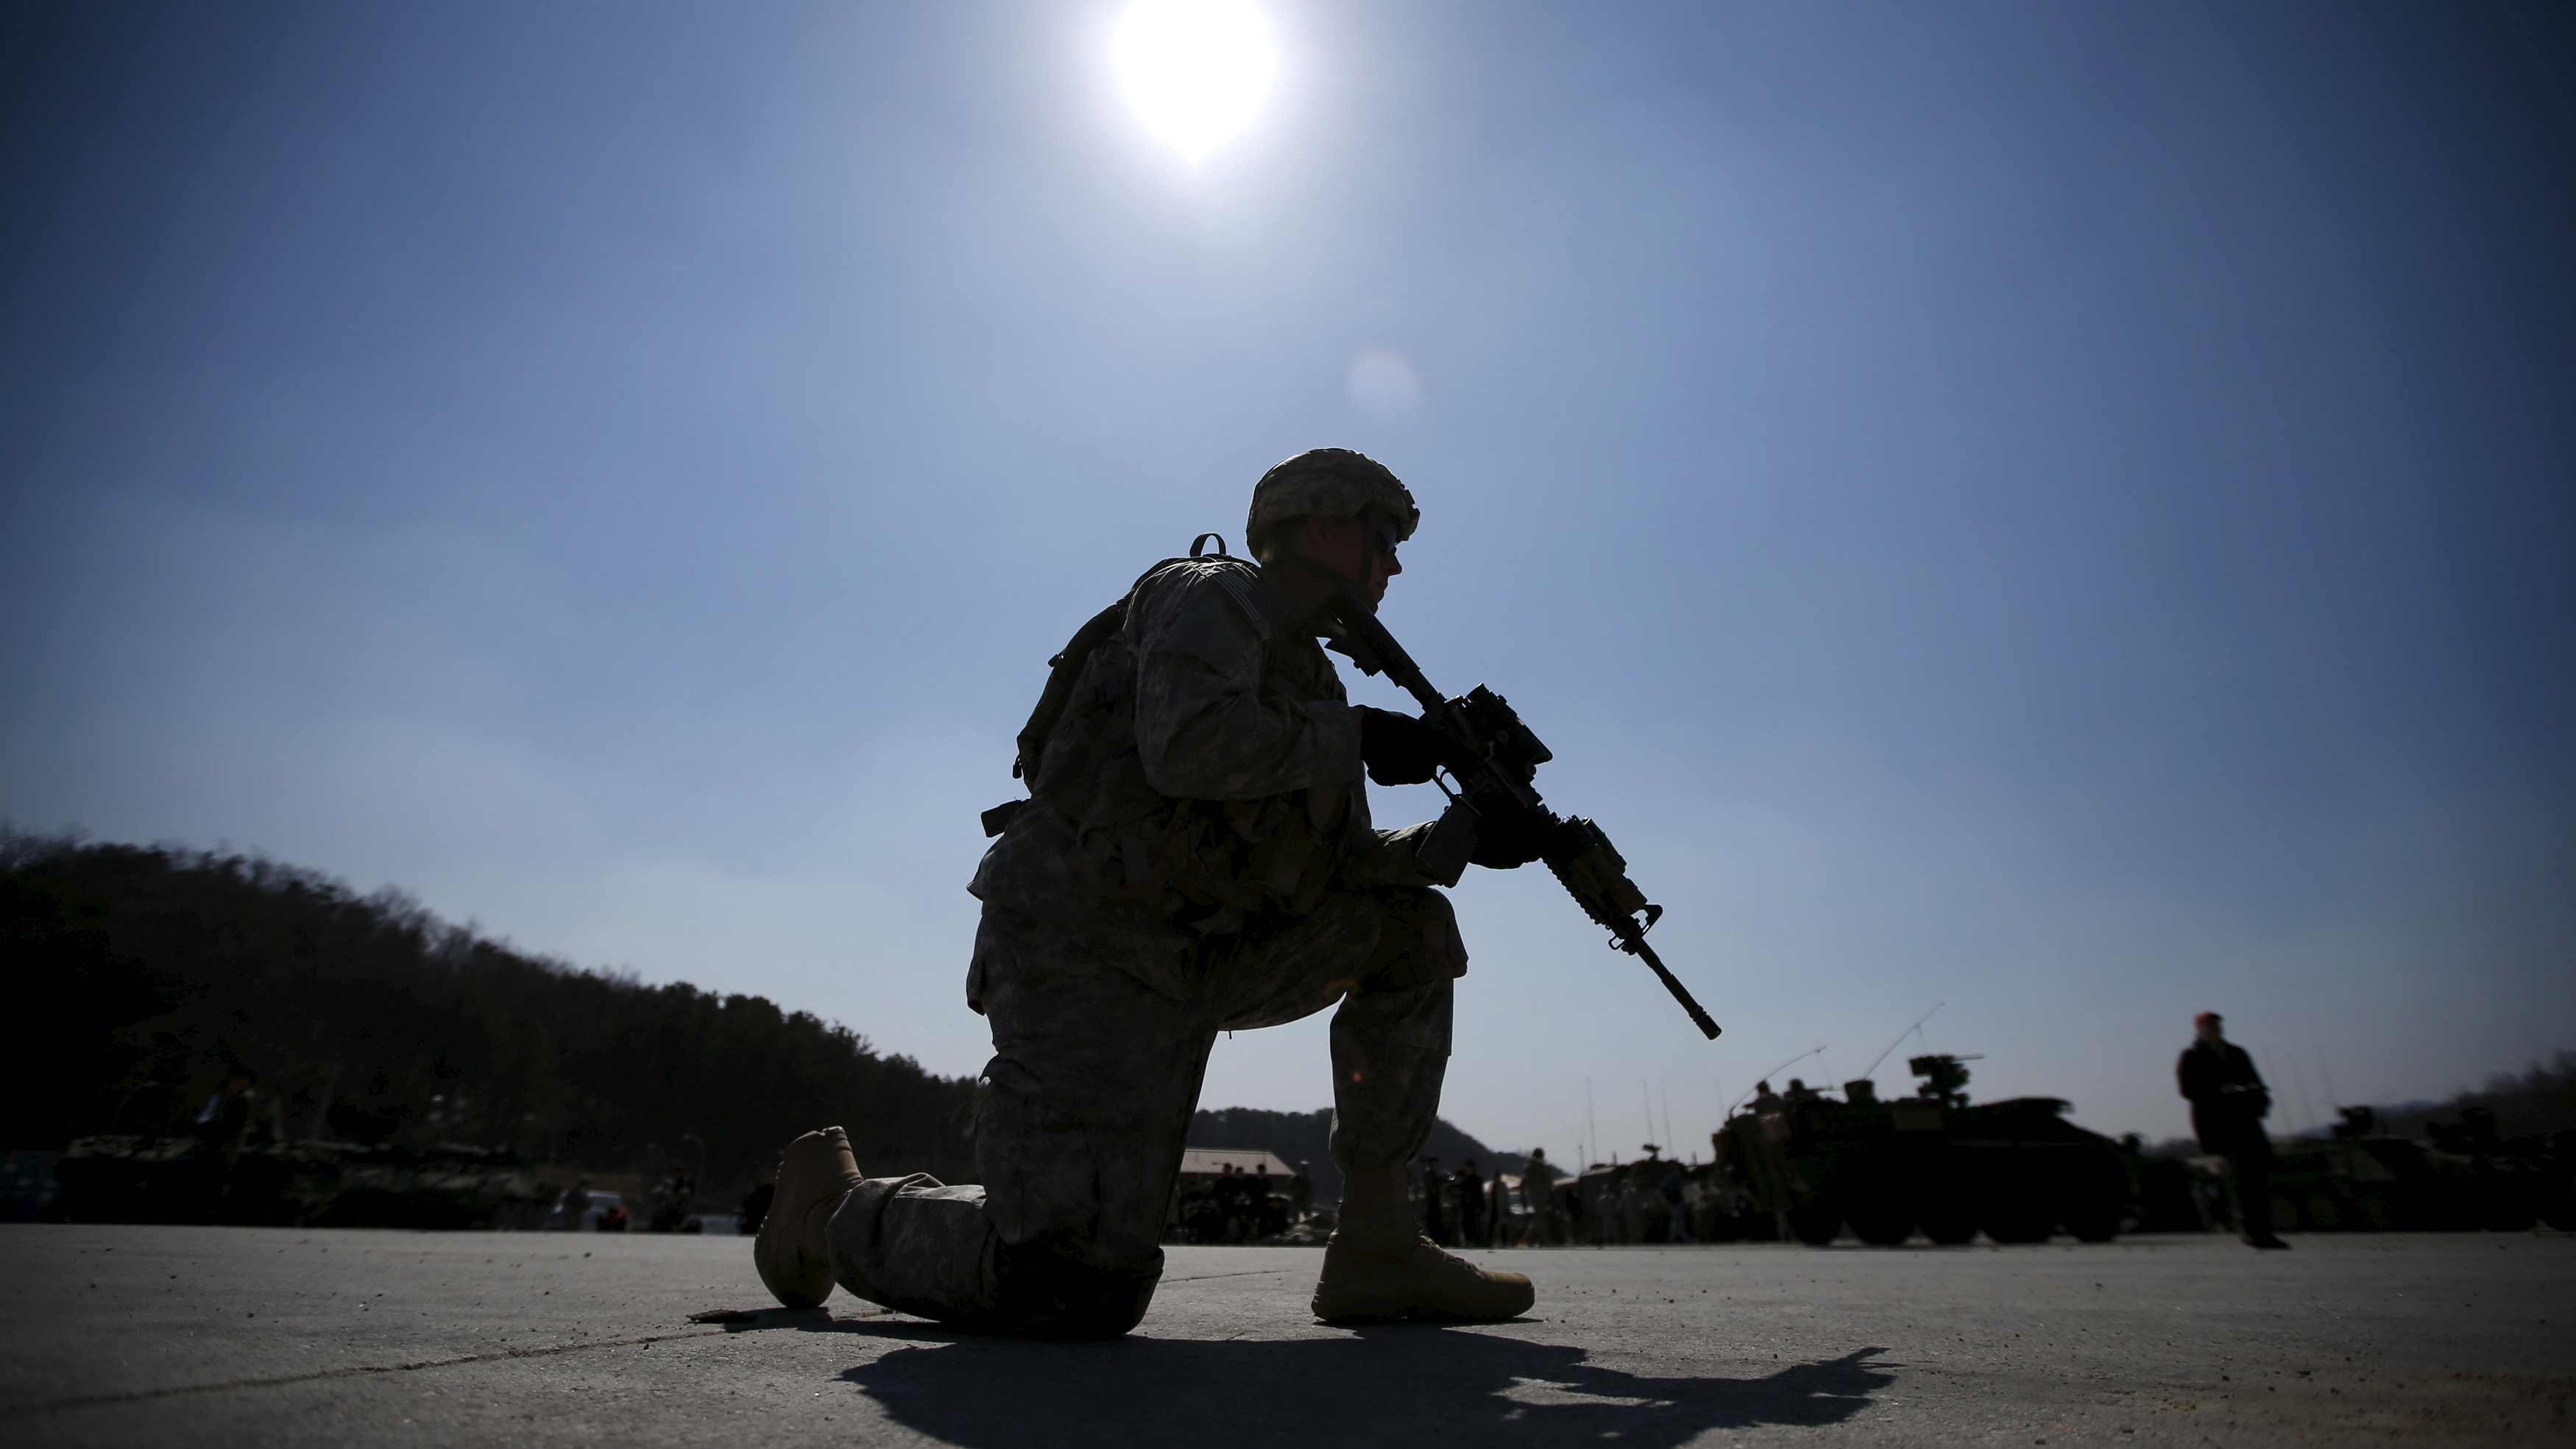 A U.S. Army soldier takes his position as he takes part in a U.S.-South Korea joint live-fire military exercise at a training field in Pocheon, south of the demilitarized zone separating the two Koreas, March 25, 2015. The exercise is part of Foal Eagle, an annual military training between U.S. and South Korea that runs from March 2 to April 24. REUTERS/Kim Hong-Ji